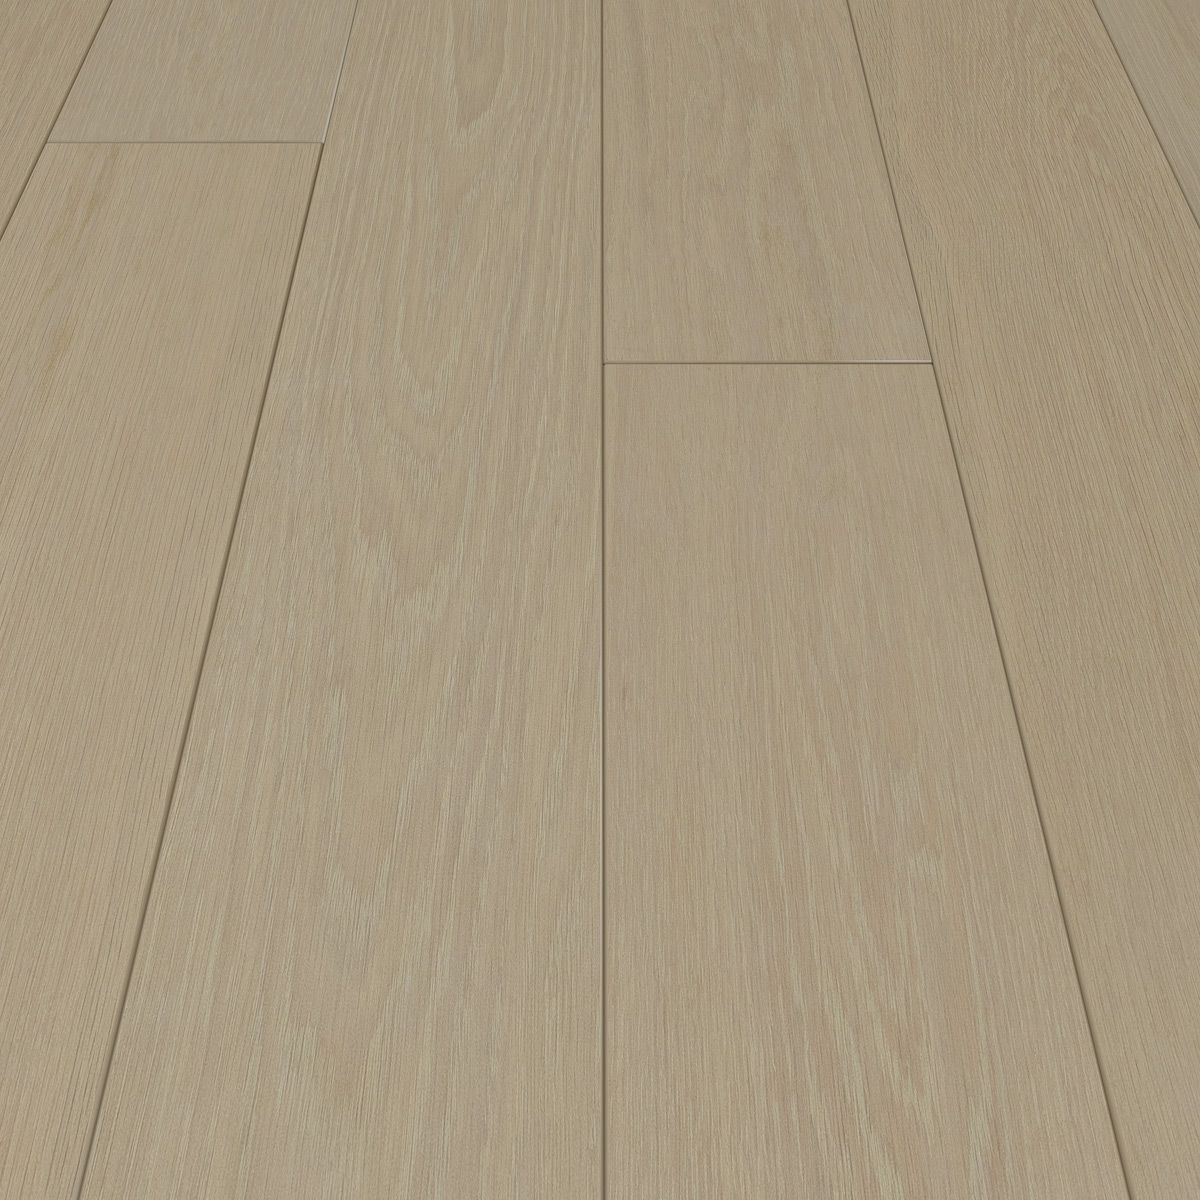 White Oak Barcelona Oiled Hardwood Flooring Preverco